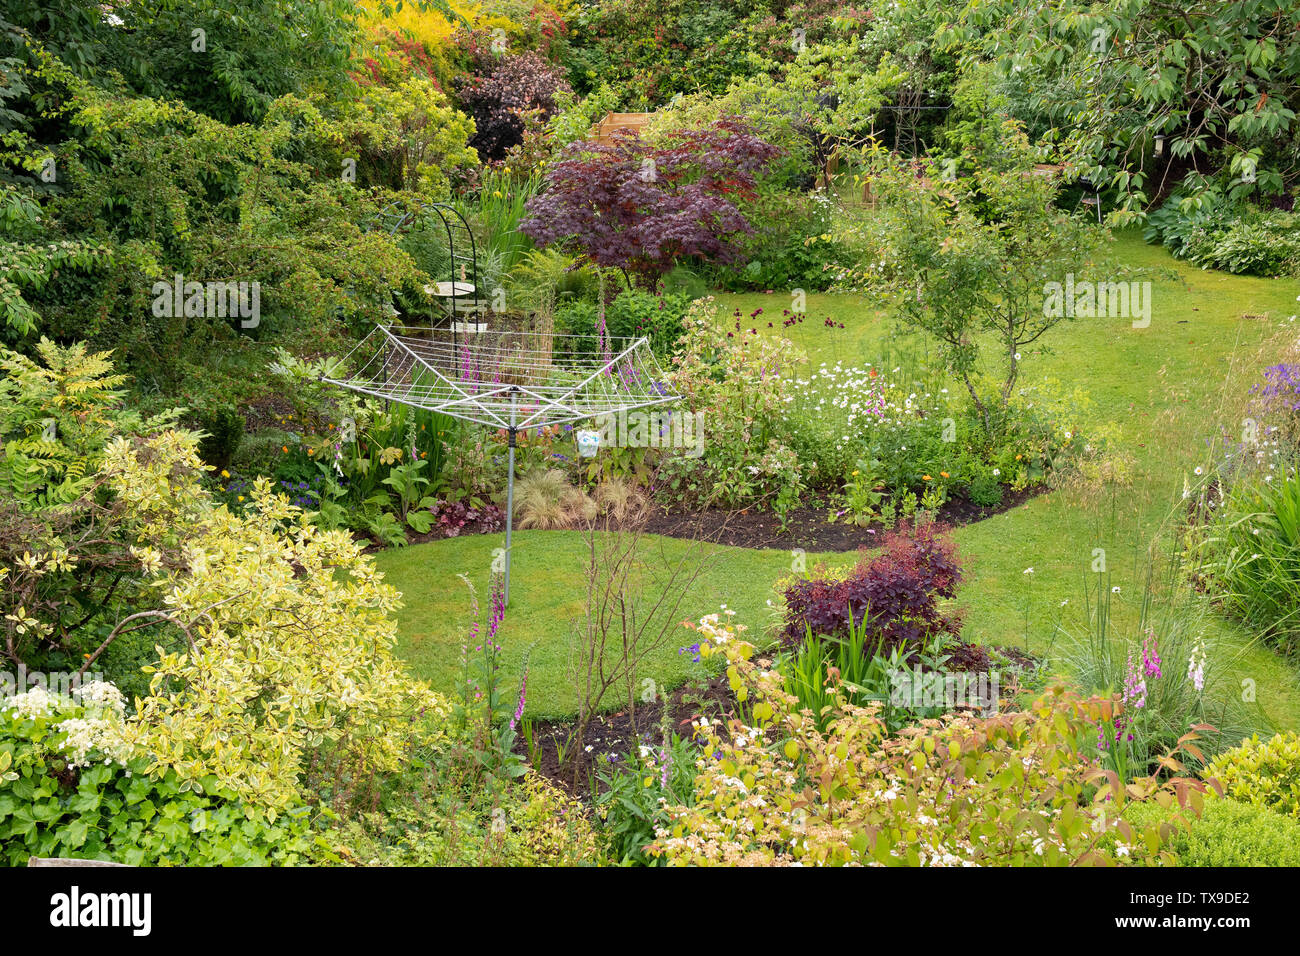 Back Garden In Early Summer Viewed From Upstairs Bedroom Window With Rotary Dryer And Country Style Mixed Borders Stirlingshire Scotland Uk Stock Photo Alamy